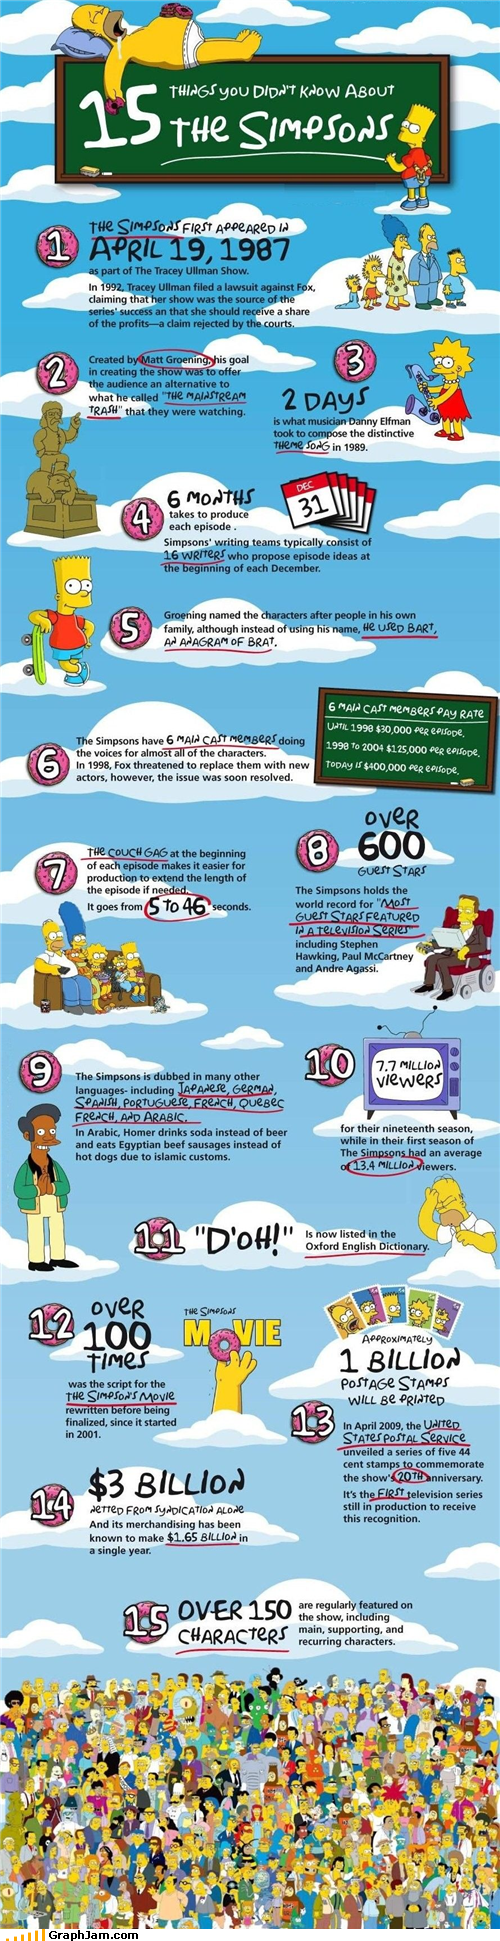 facts infographic movies simpson television - 4694776832